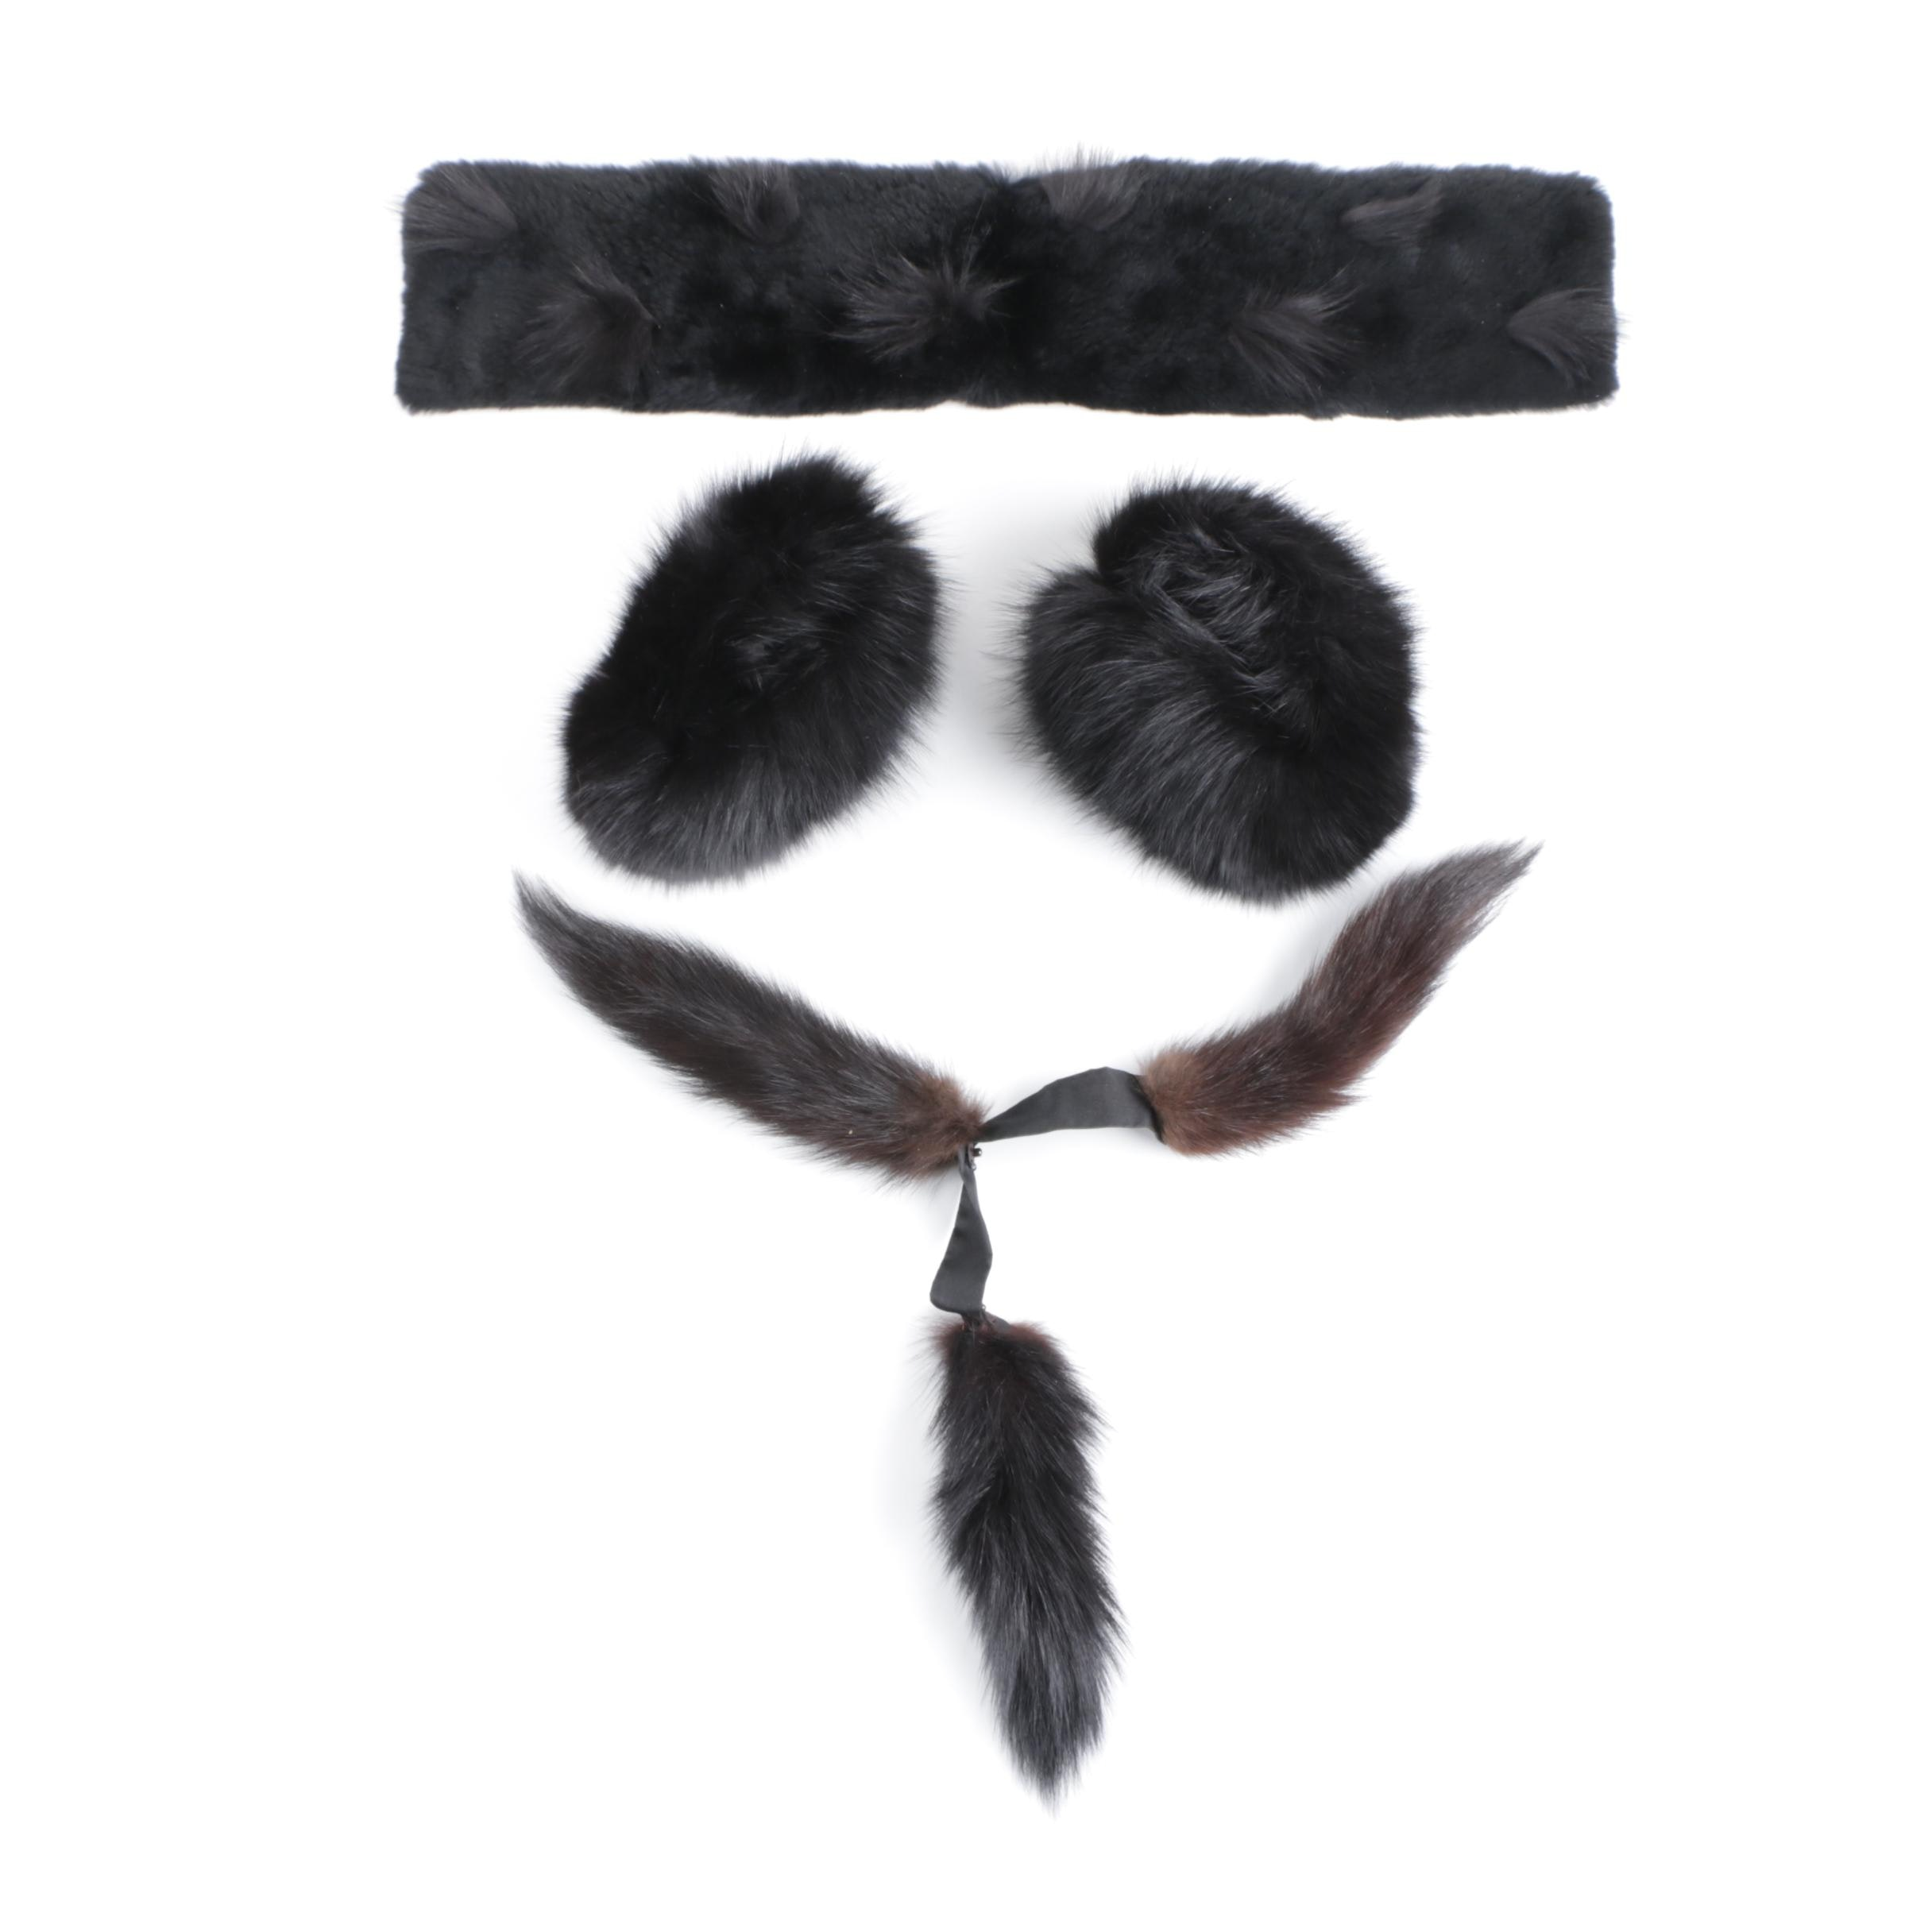 Dyed Fur Accessories